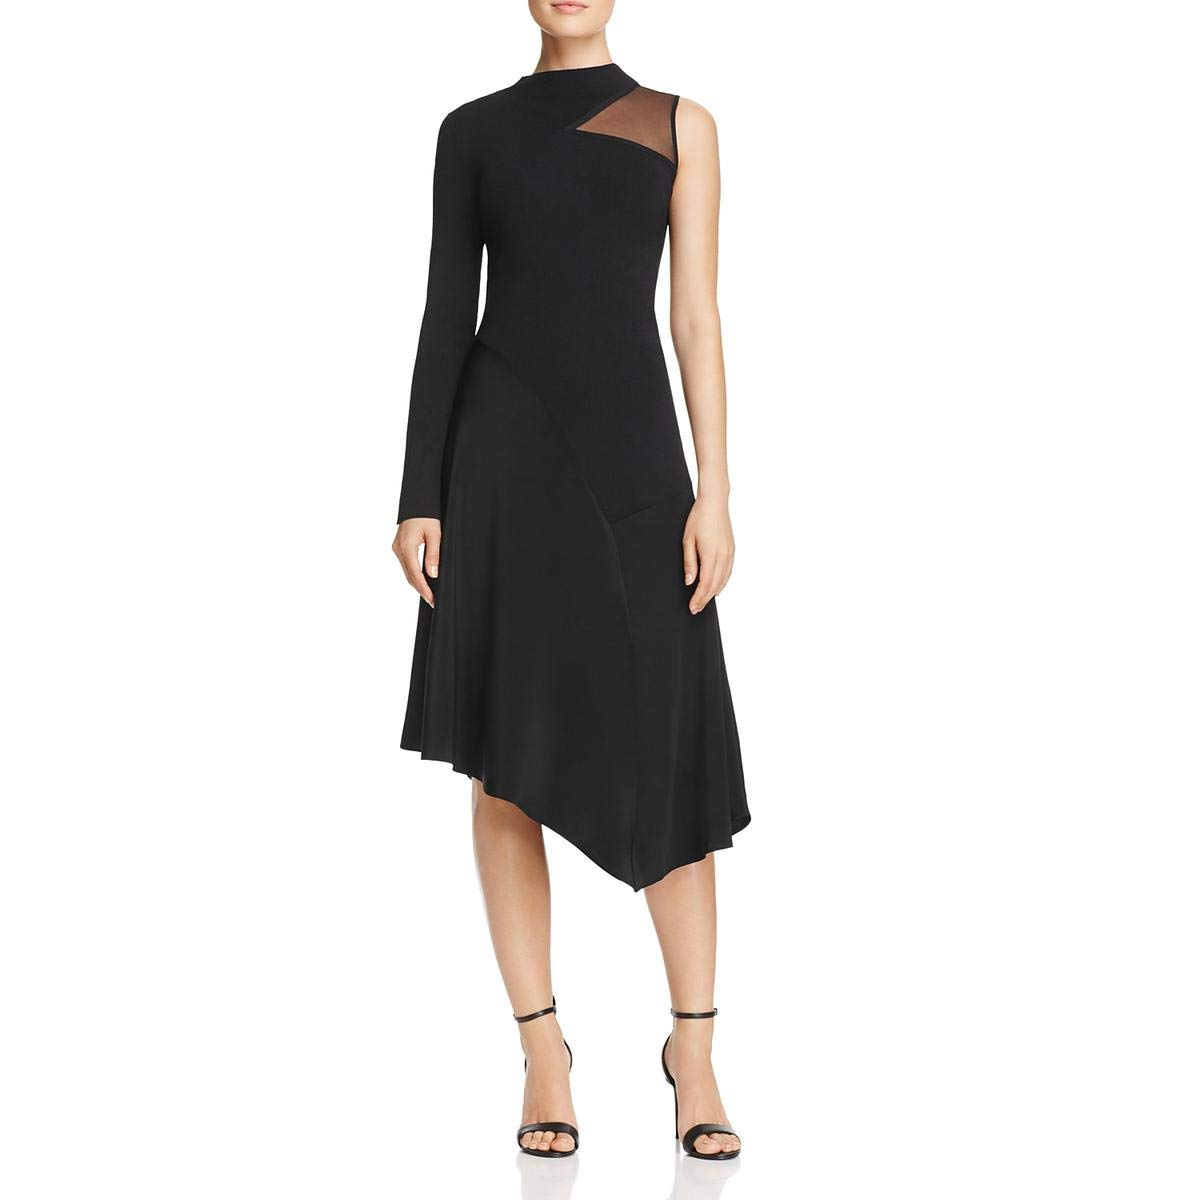 Black Onyx Nic + Zoe Womens One Shoulder Evening Cocktail Dress